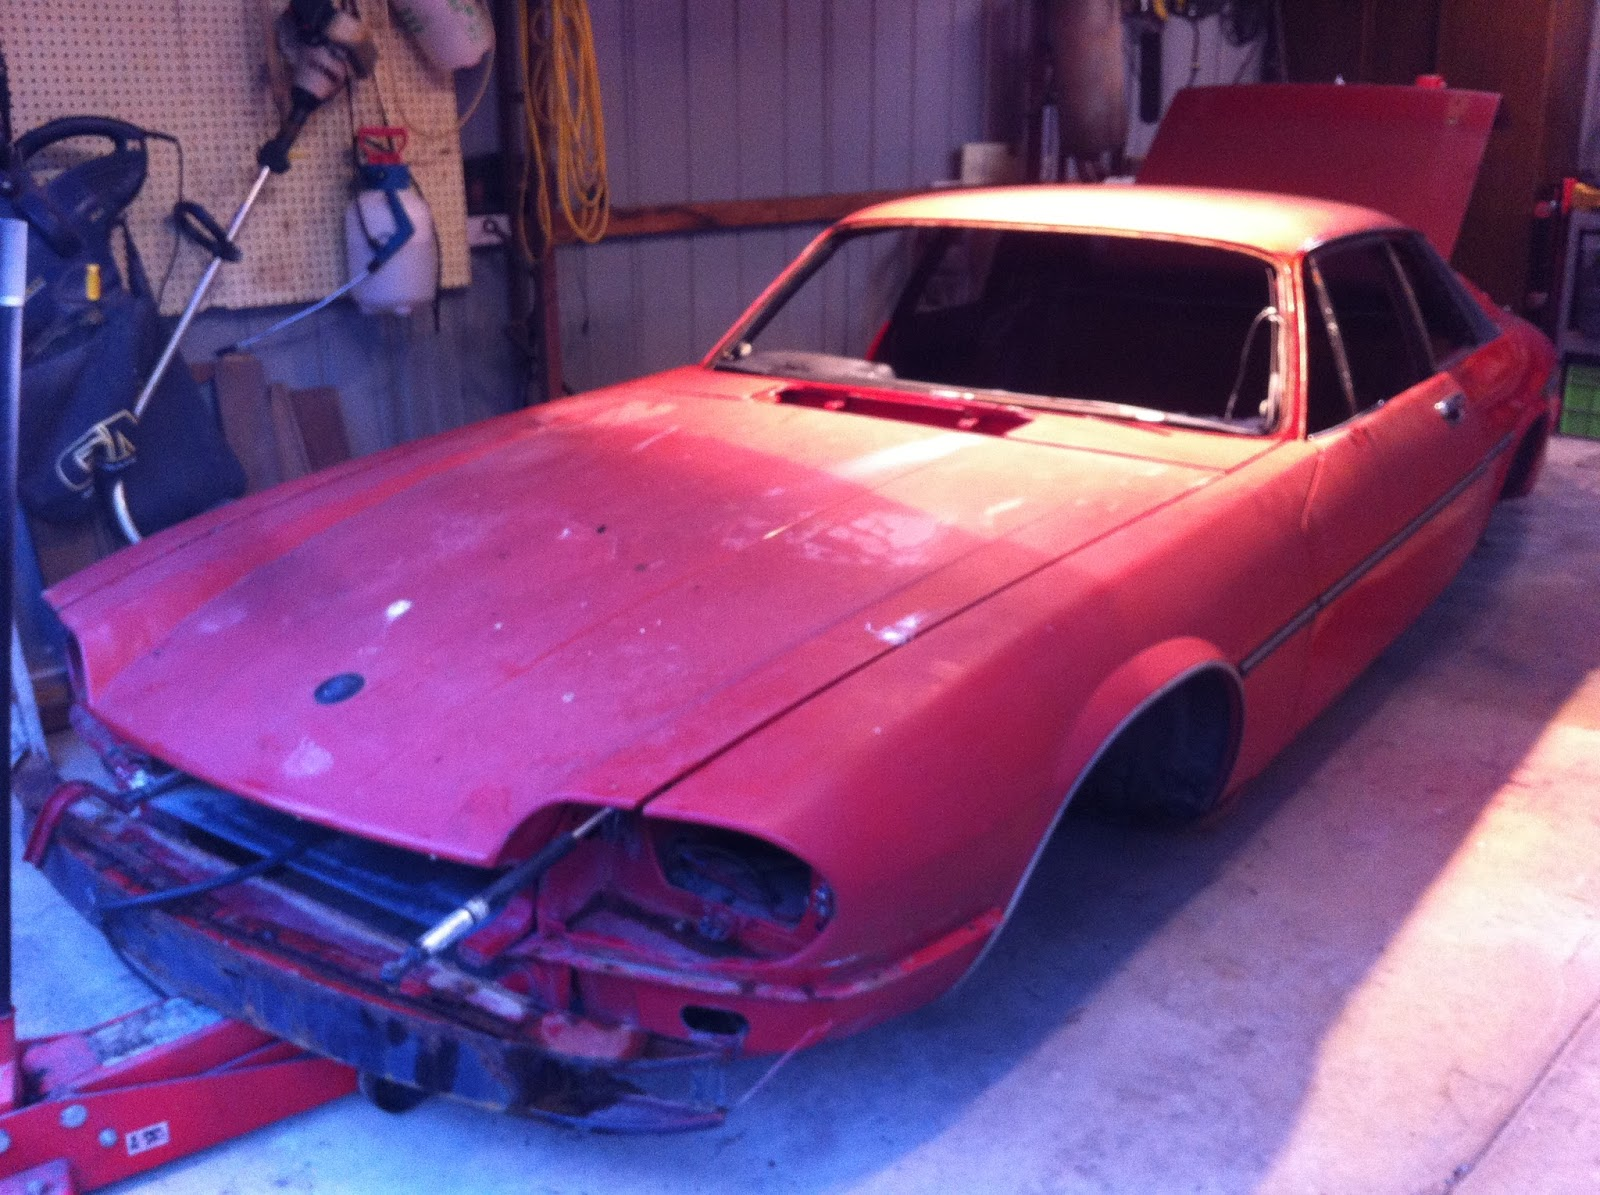 Jaguar Xjs Restoration Modification The Beginning Xj6 Wiring Harness Fluid Lines Dashboard Etc Rest Can Be Easily Obtained From Sedans Or Another